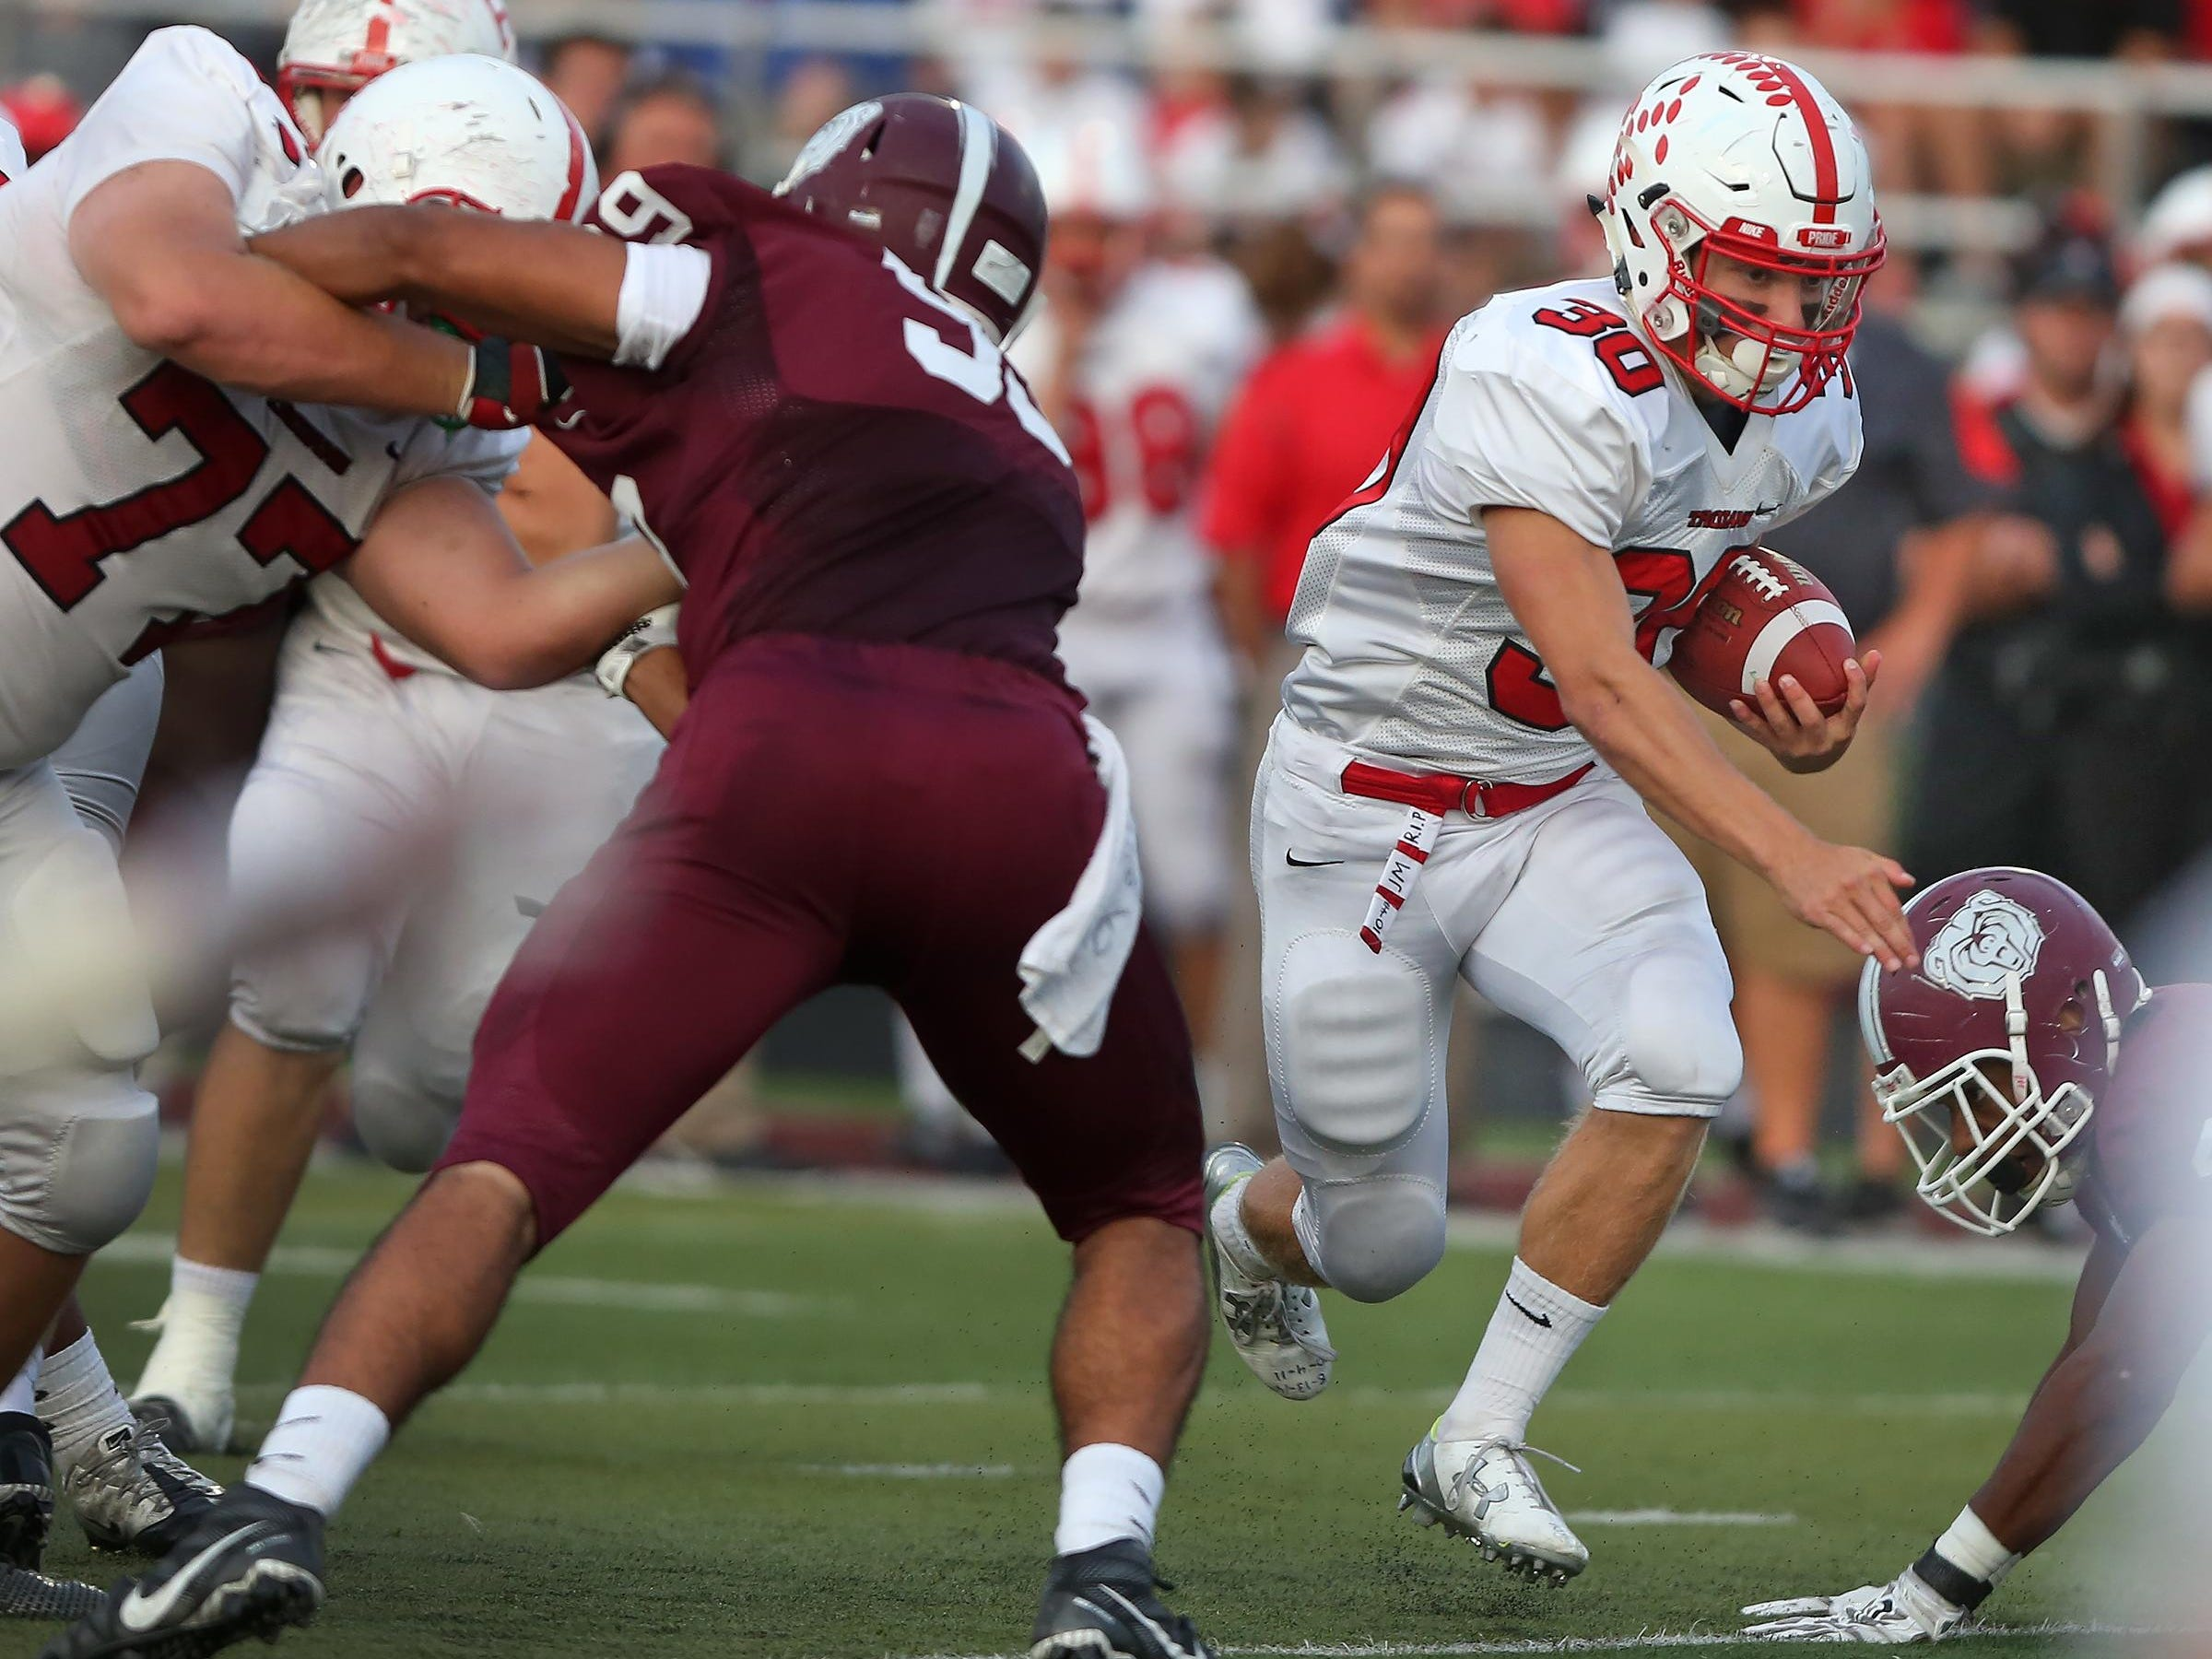 Center Grove #30 Titus McCoy dances through a hole for yardage in first half action during the Center Grove at Lawrence Central football game, Friday, September 25, 2015. Center Grove won 44-26.